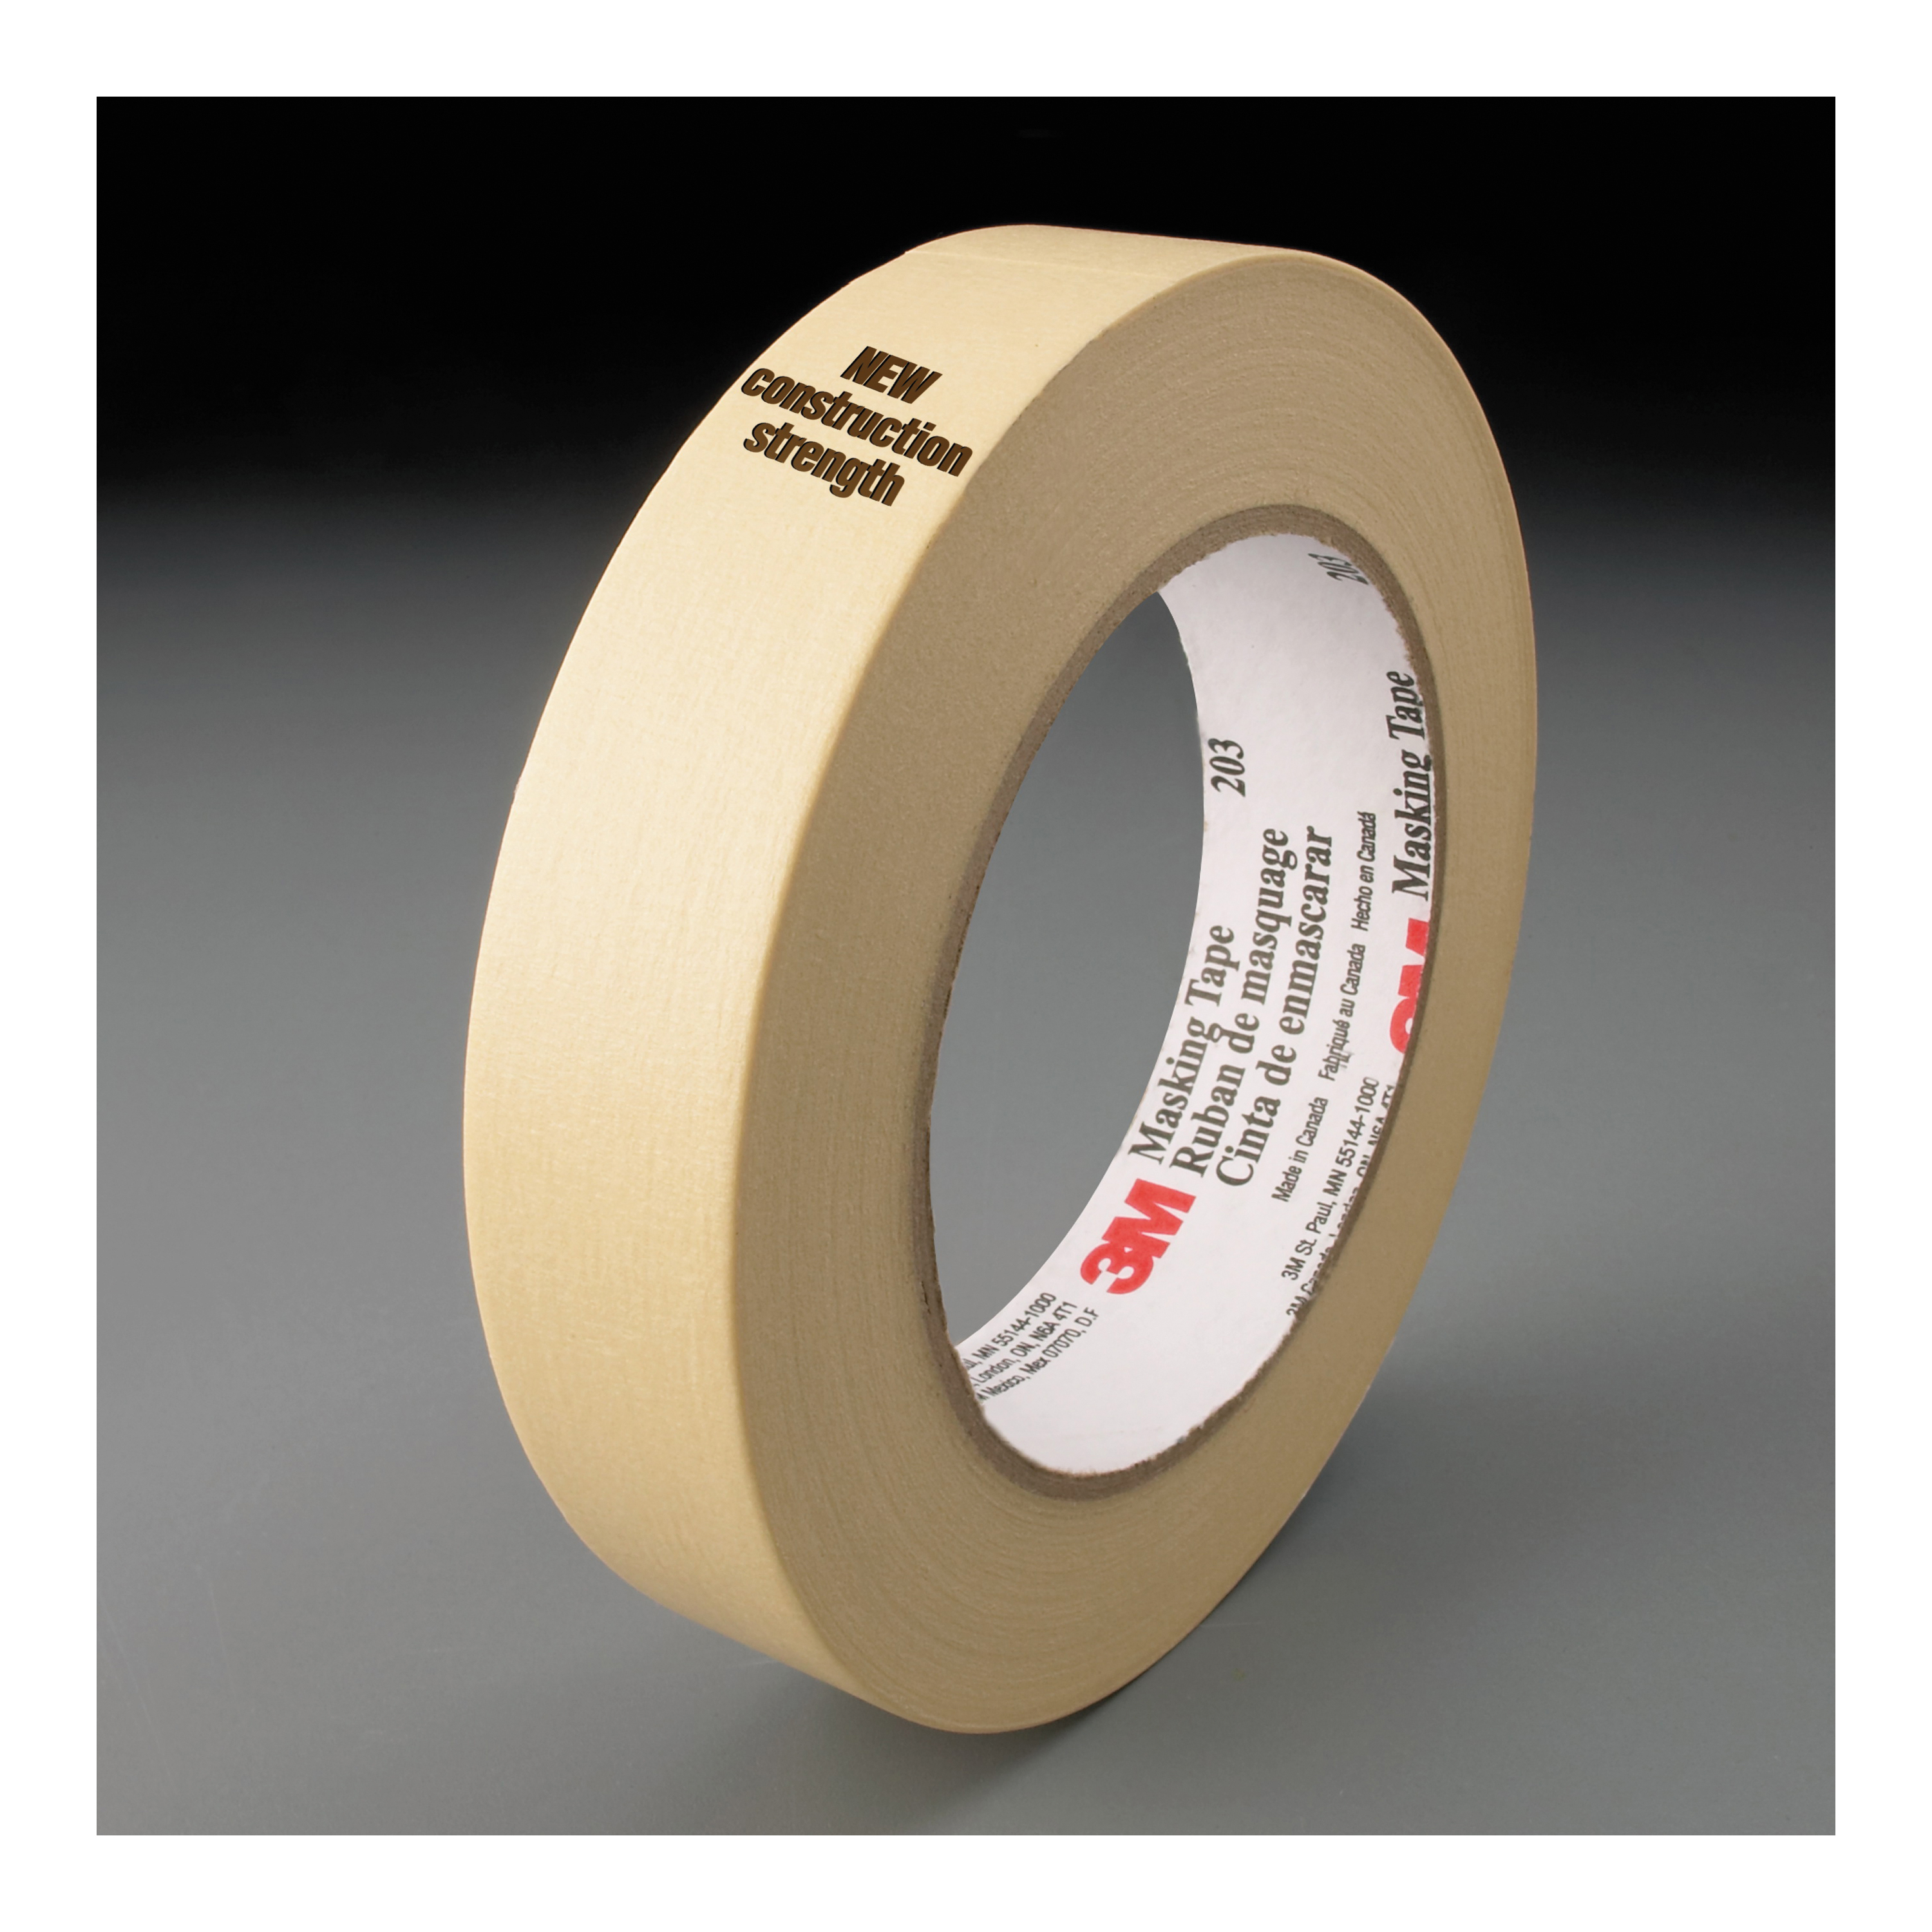 ScotchBlue™ 021200-98031 Painter's Masking Tape, 60 yd L x 2.83 in W, 5.4 mil THK, Acrylic Adhesive, Crepe Paper Backing